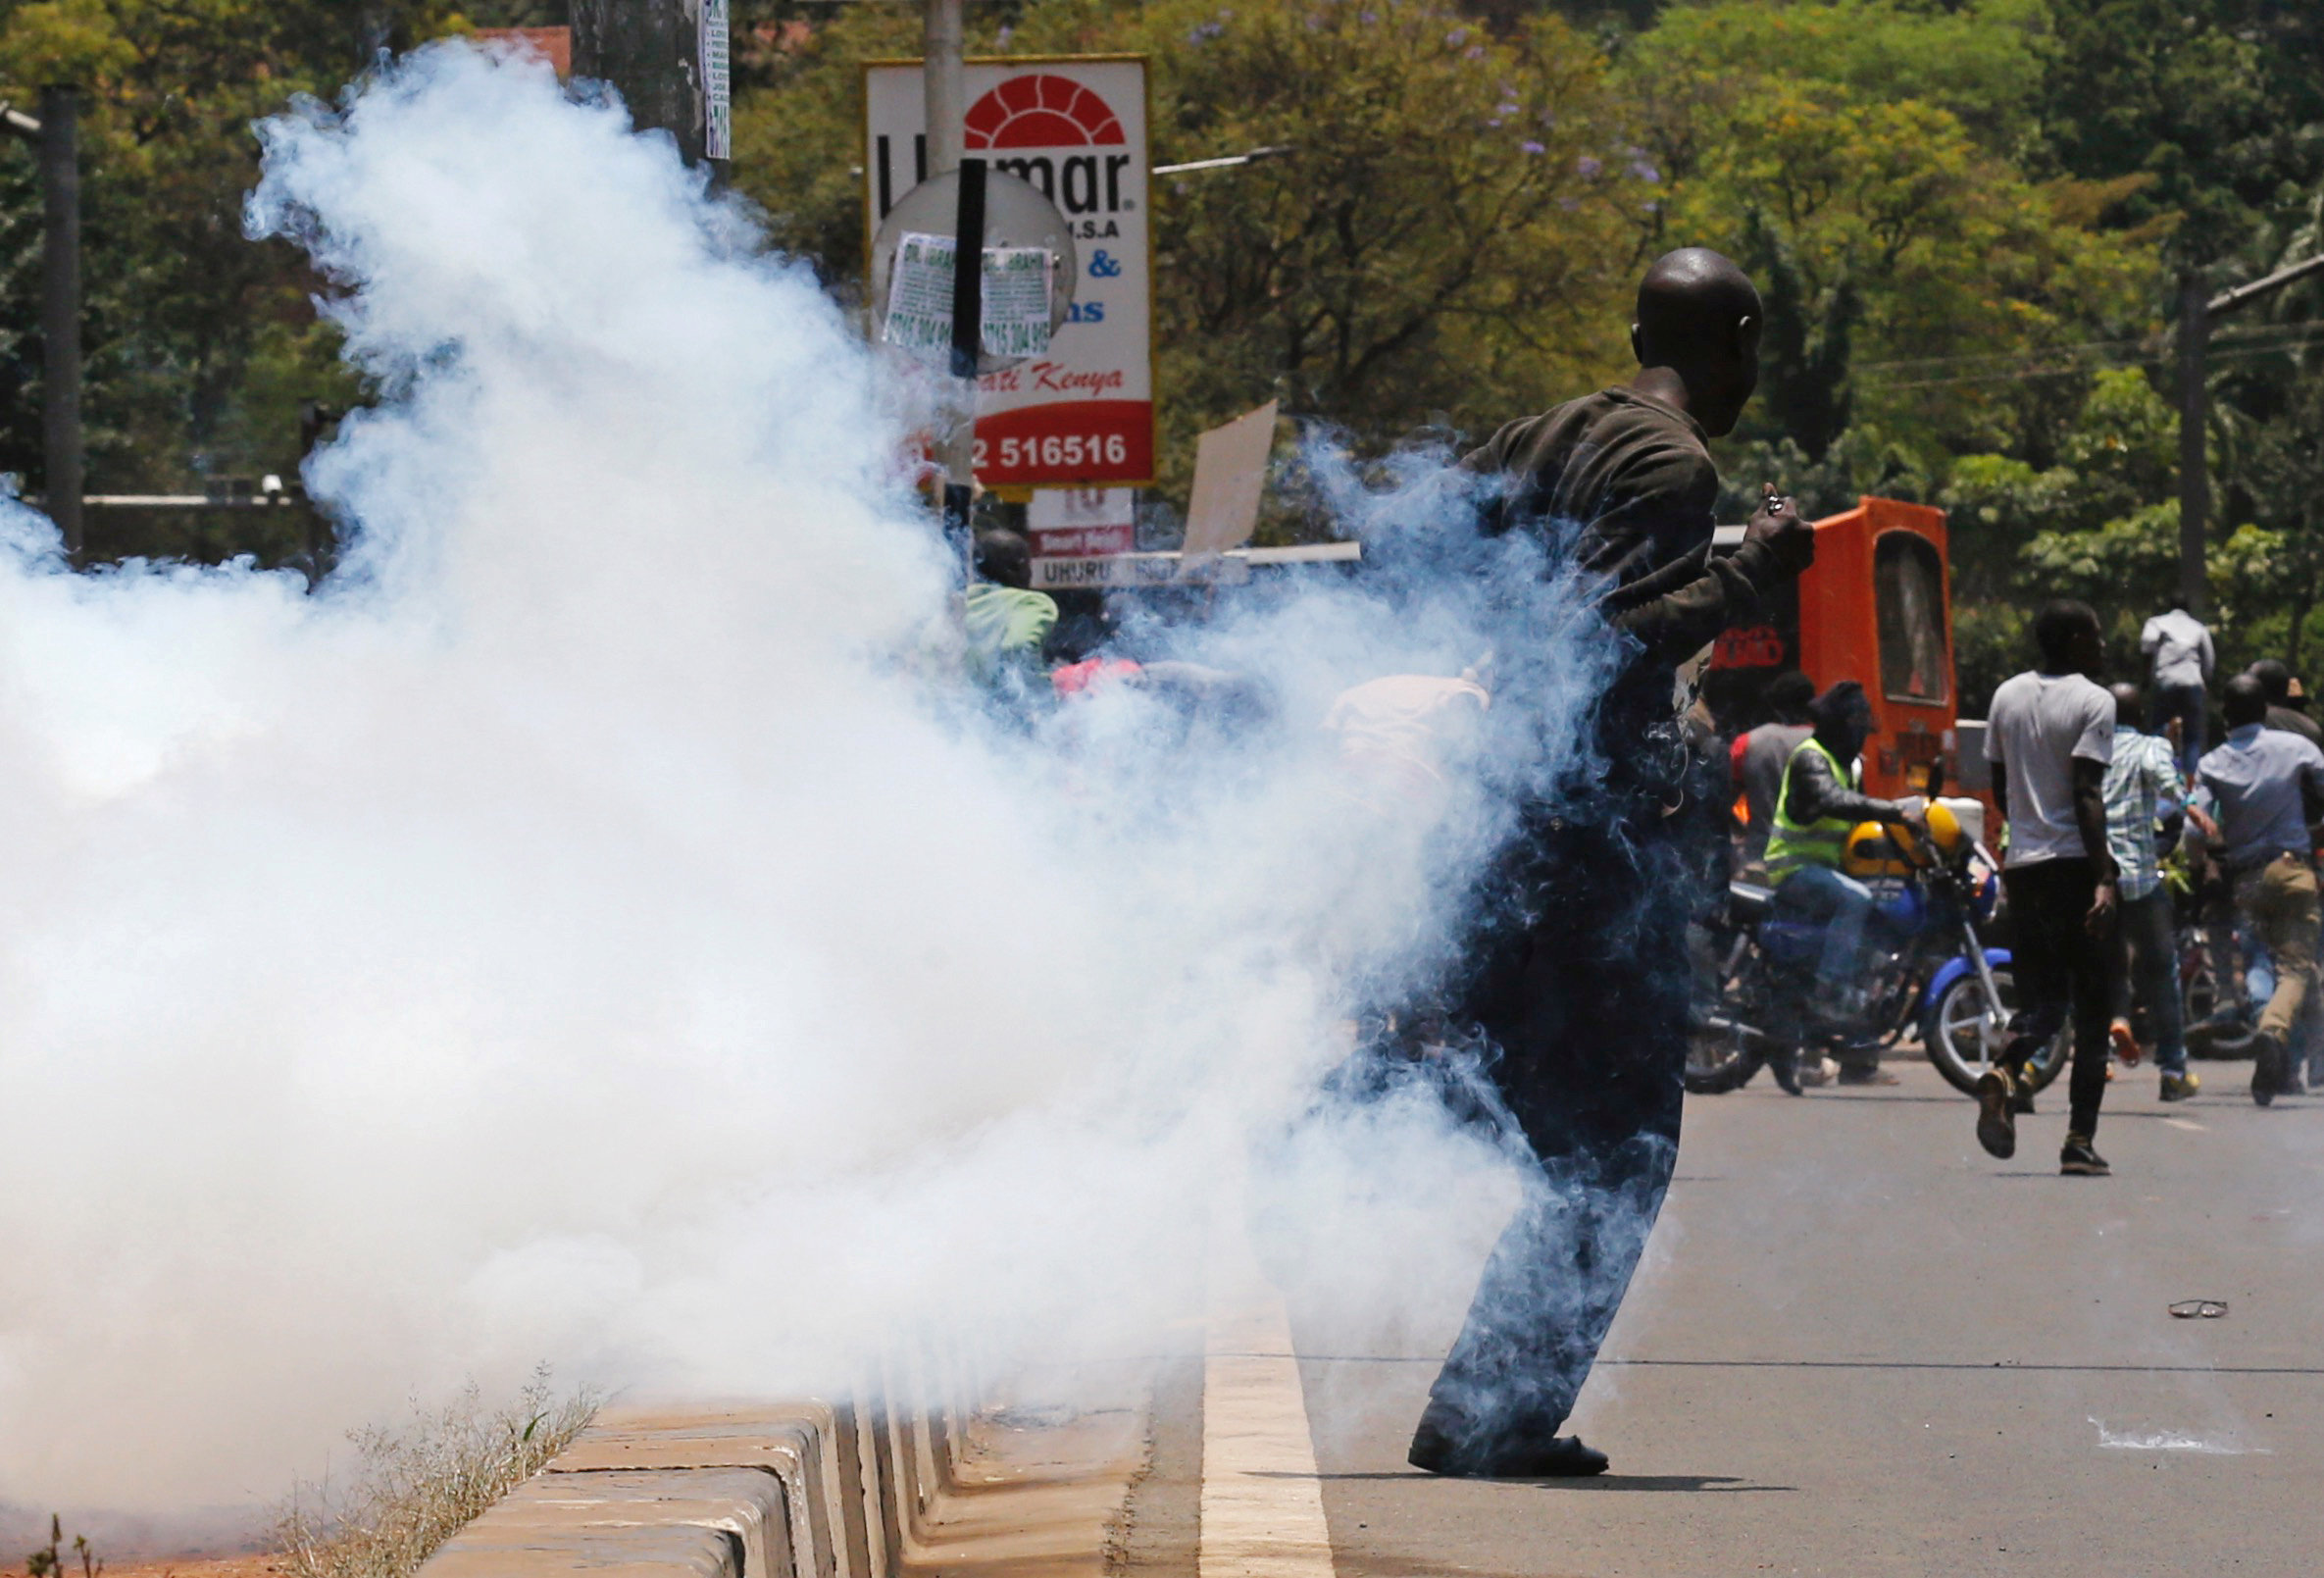 A supporter of the opposition National Super Alliance (NASA) coalition runs after riot policemen dispersed protesters during a demonstration calling for the removal of Independent Electoral and Boundaries Commission (IEBC) officials in Nairobi, Kenya September 26, 2017. REUTERS/Thomas Mukoya